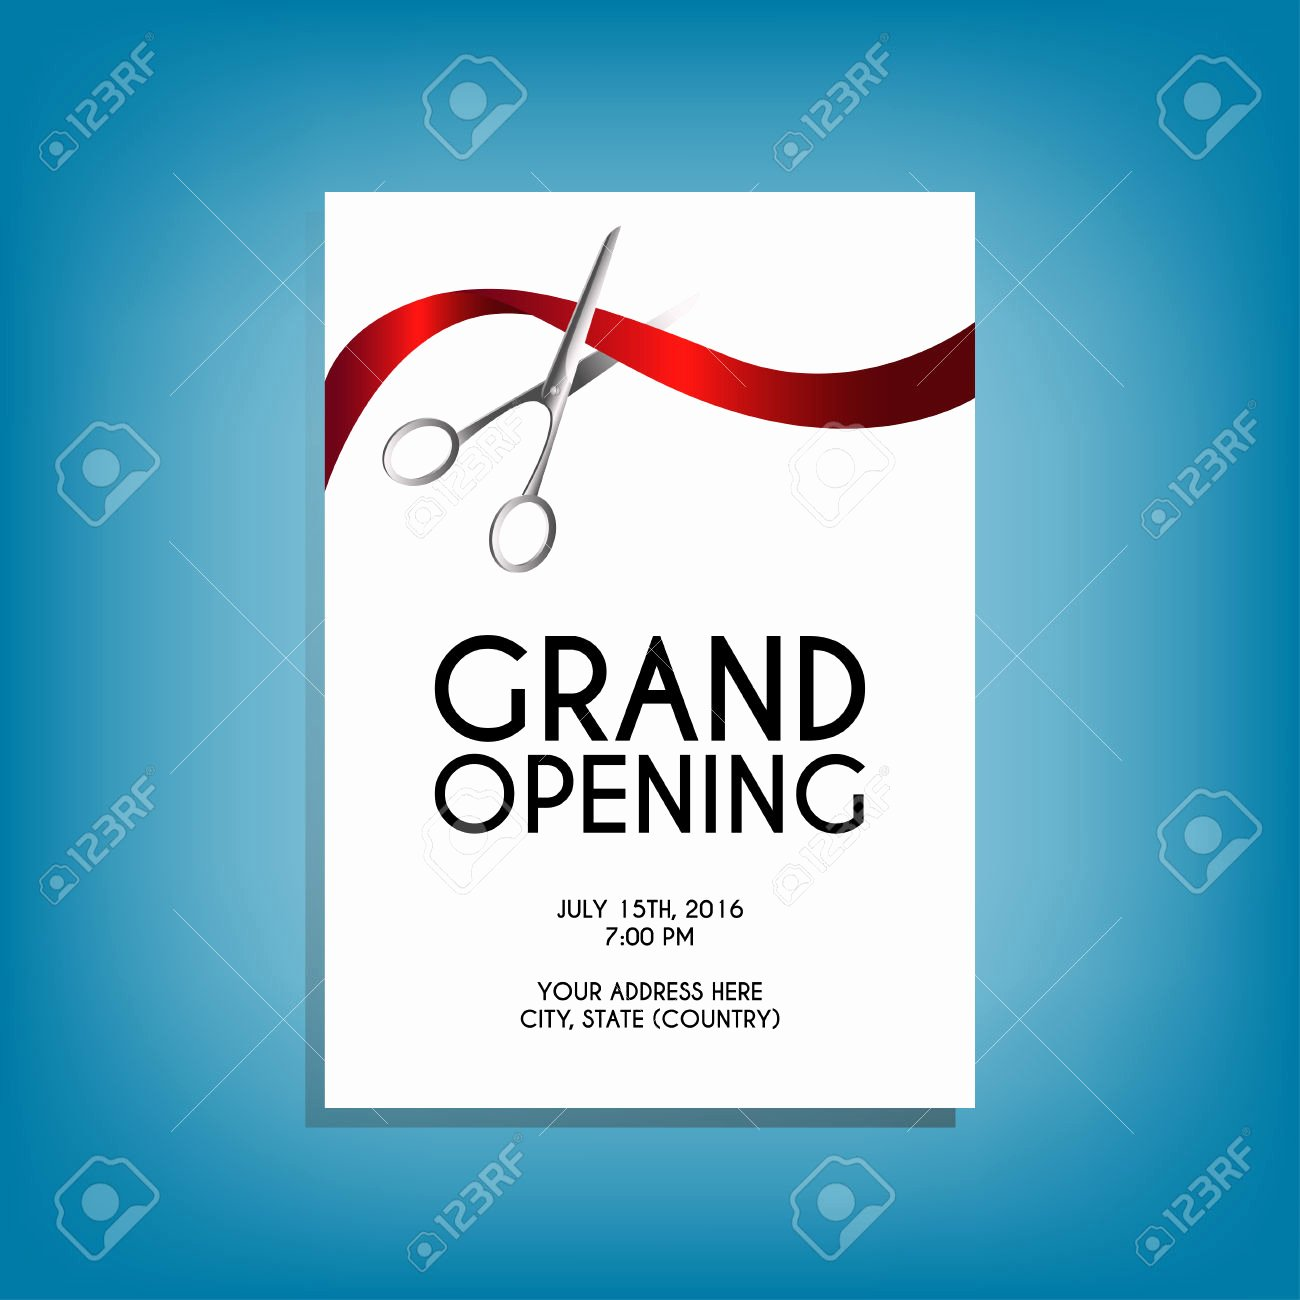 Grand Opening Invitation Template Luxury Grand Opening Invitation Templates